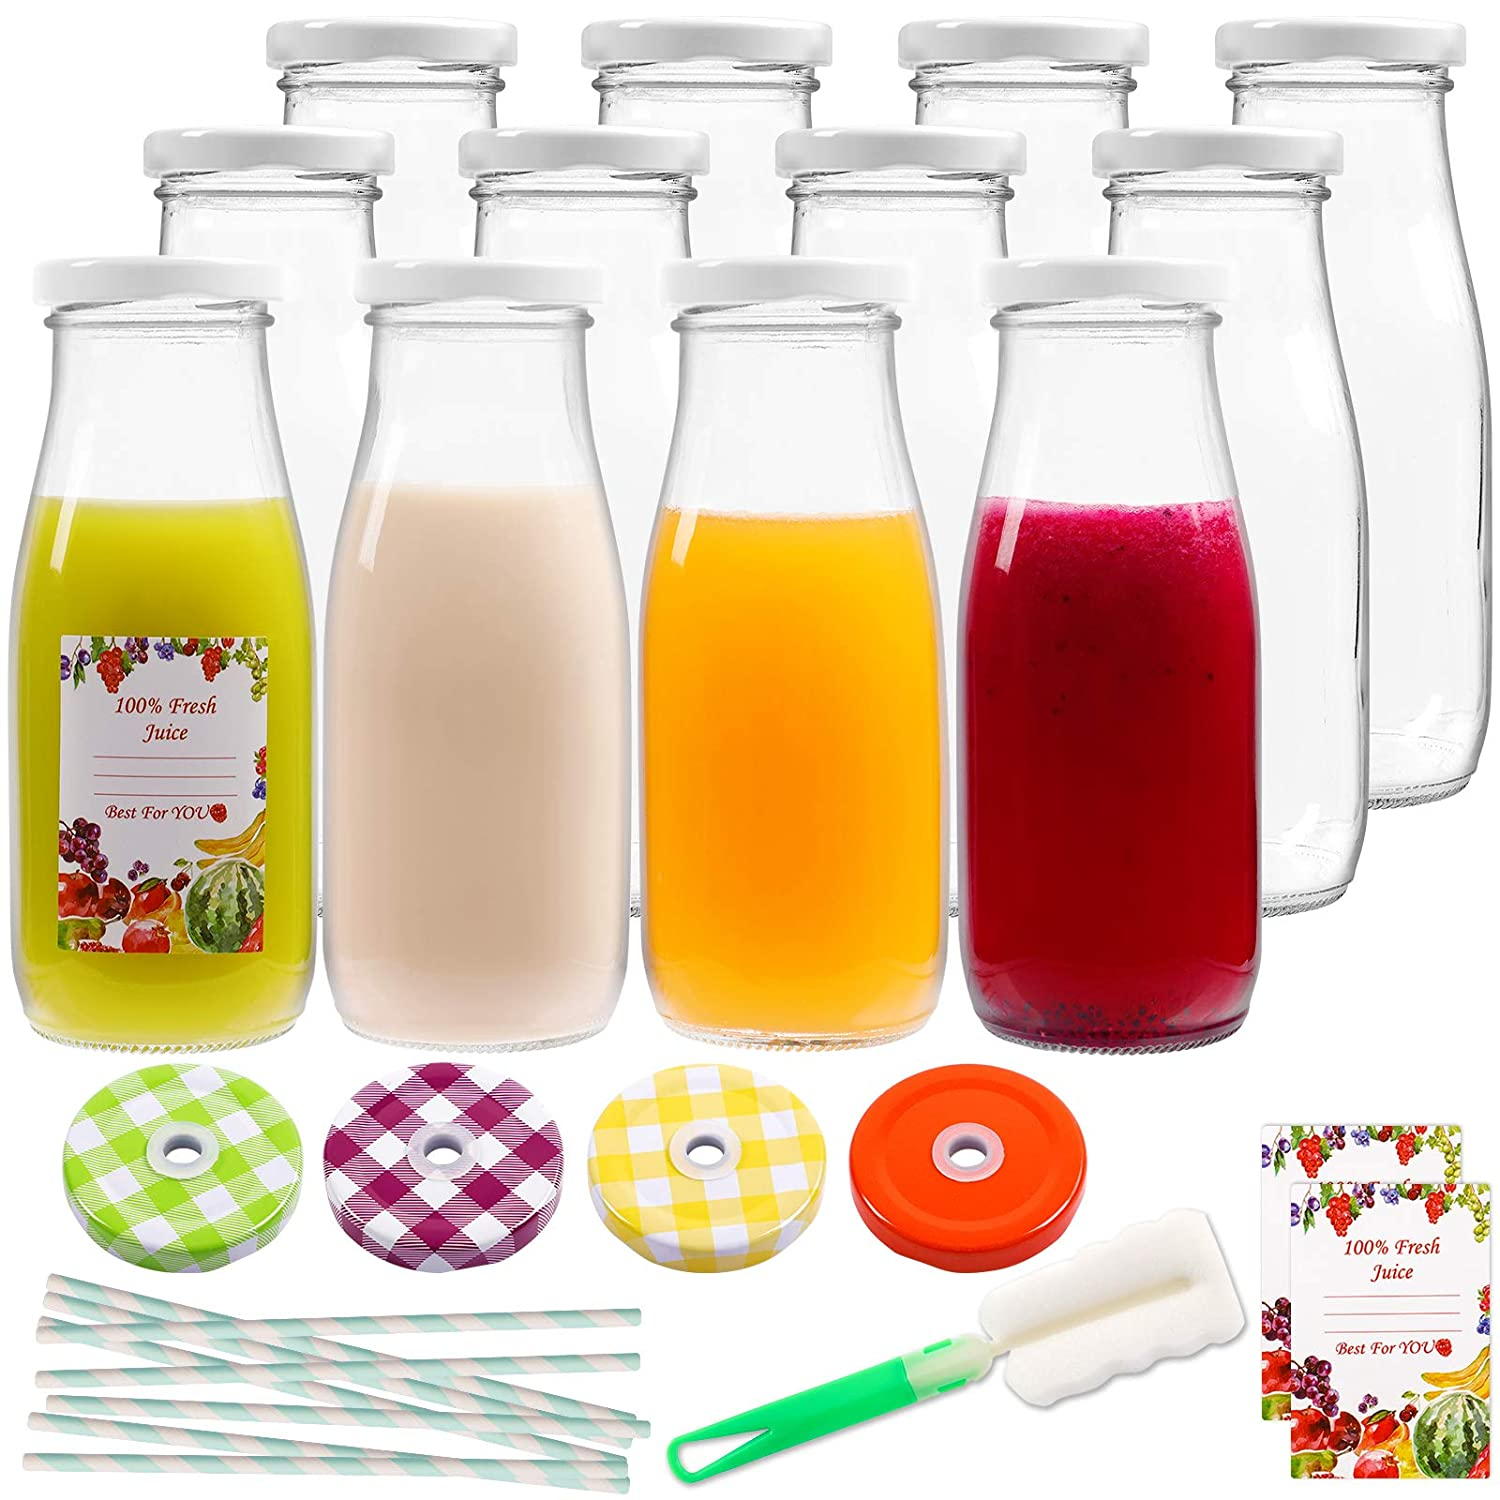 12oz 12pcs Empty Glass Bottles, Reusable Clear Glass Juice and Milk Bottles with Lids, Clear Containers for Juice, Milk and Other Beverages